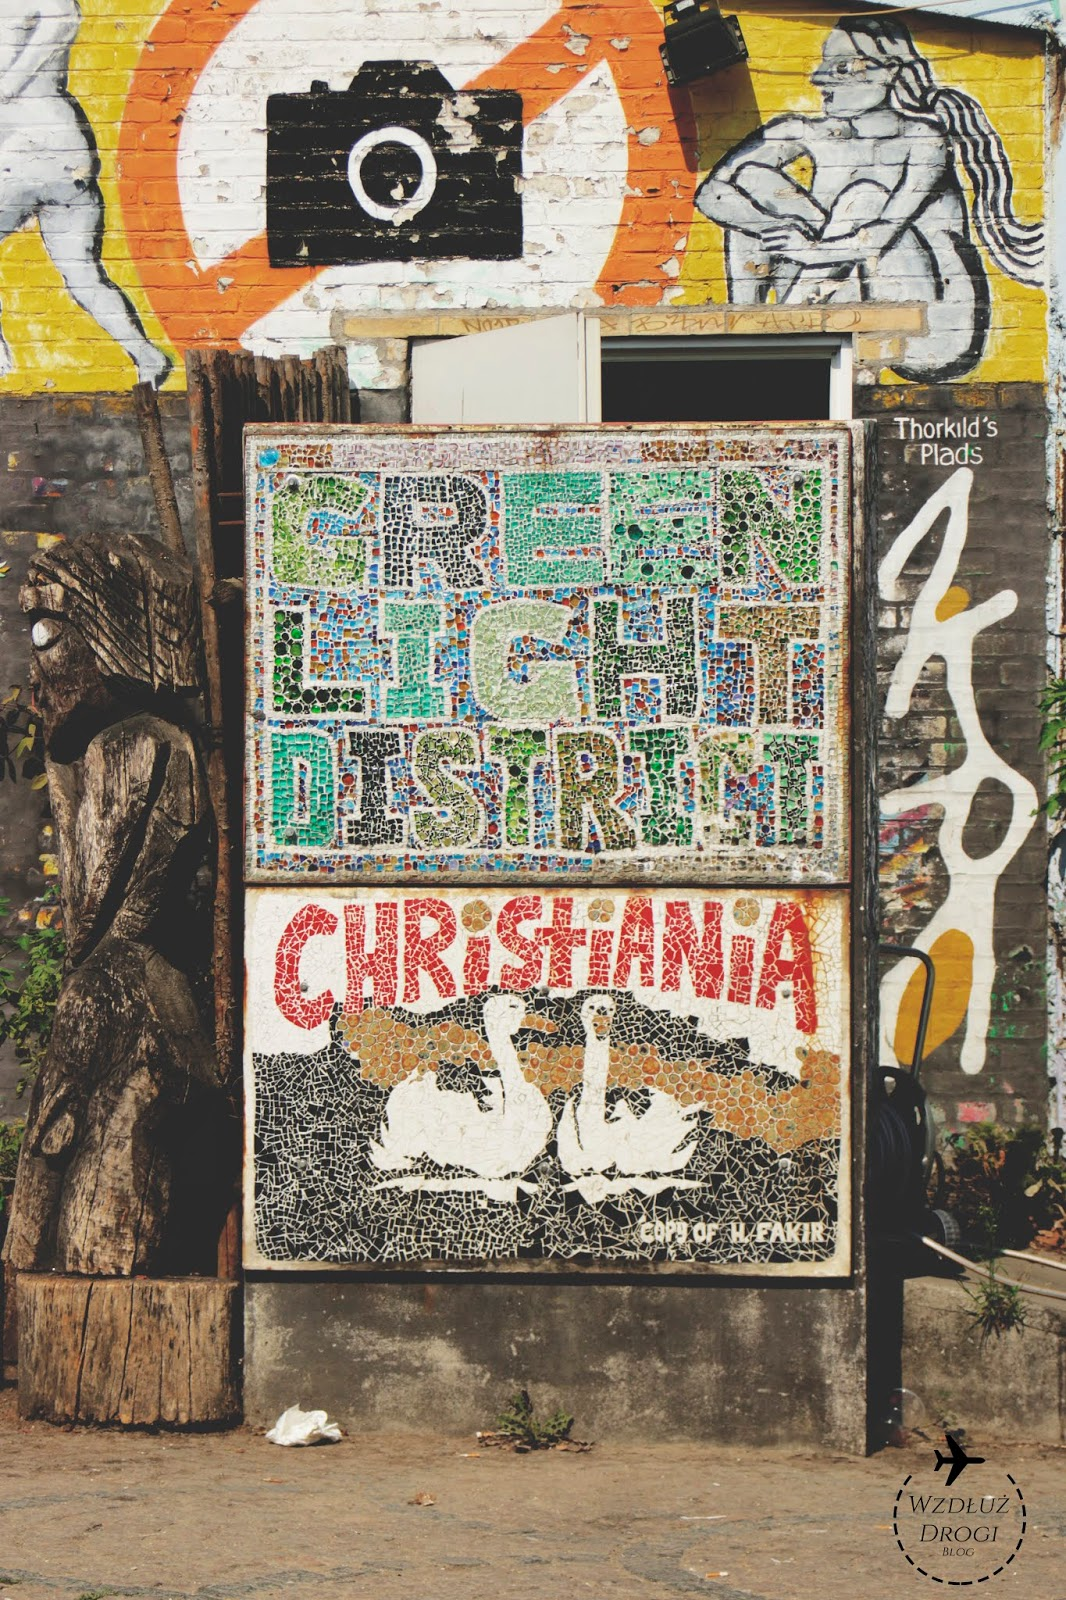 green light, christiania, kopenhaga